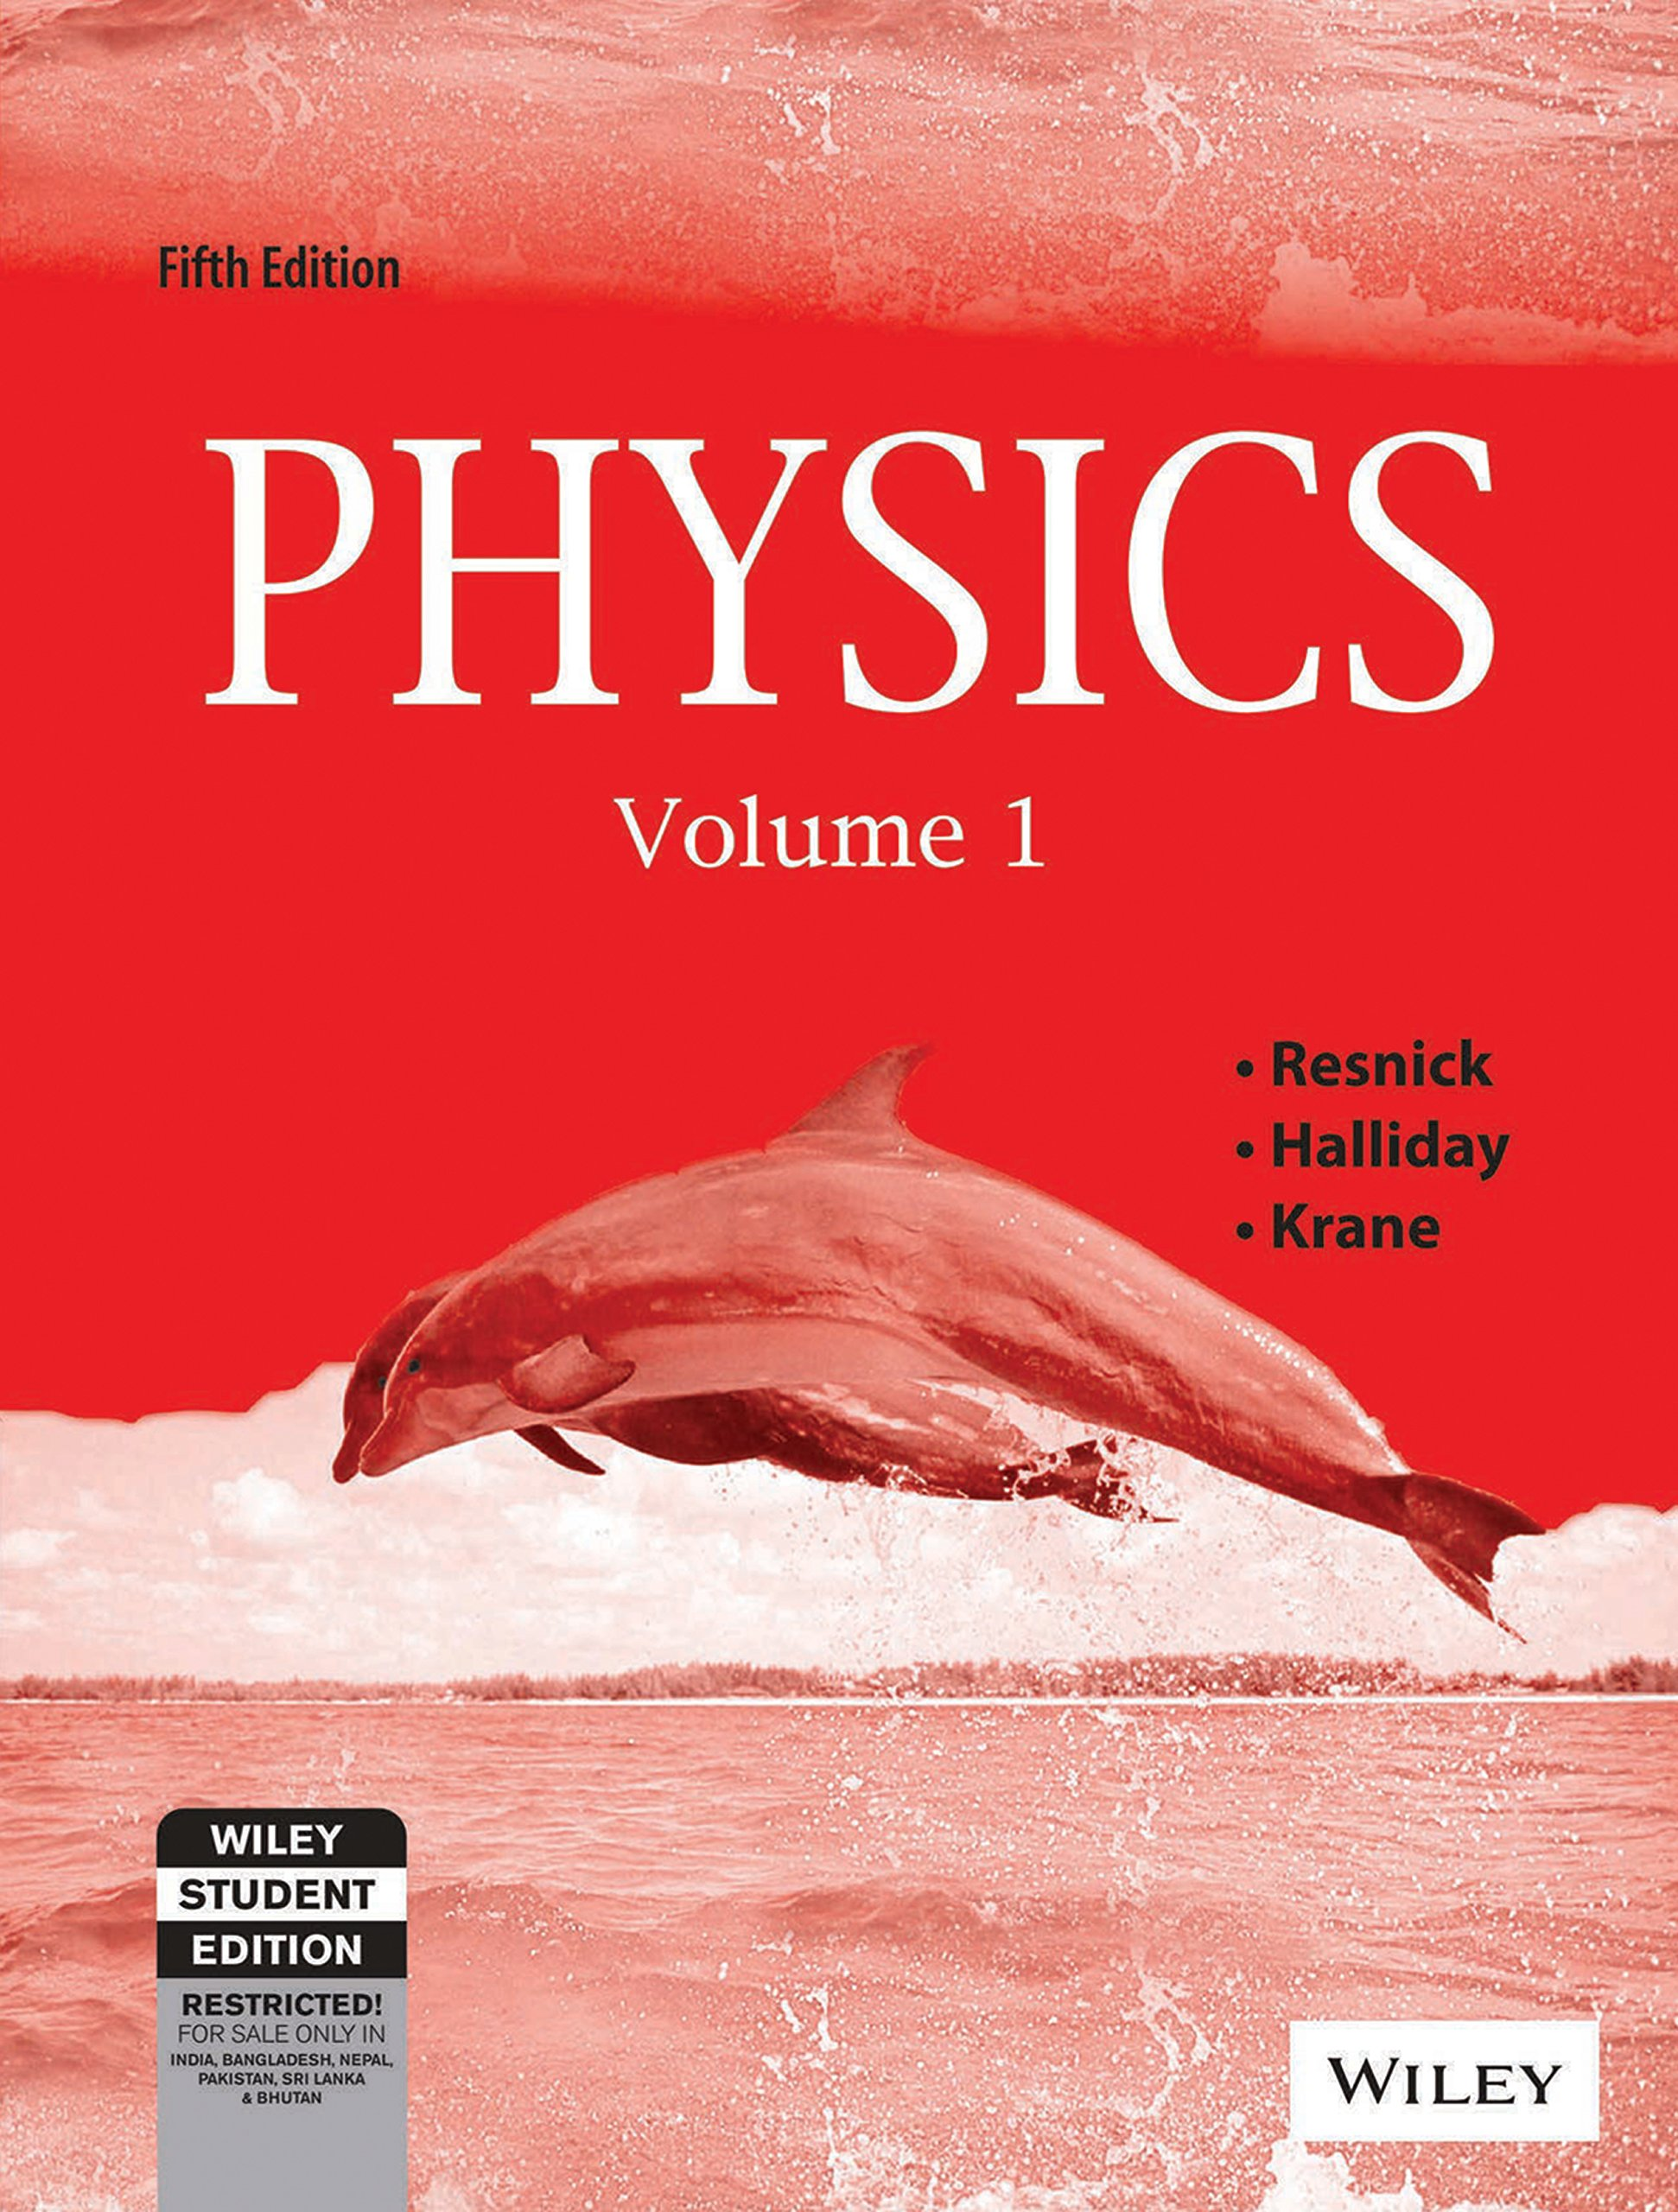 Buy physics vol 1 5ed book online at low prices in india physics vol 1 5ed reviews ratings amazon in